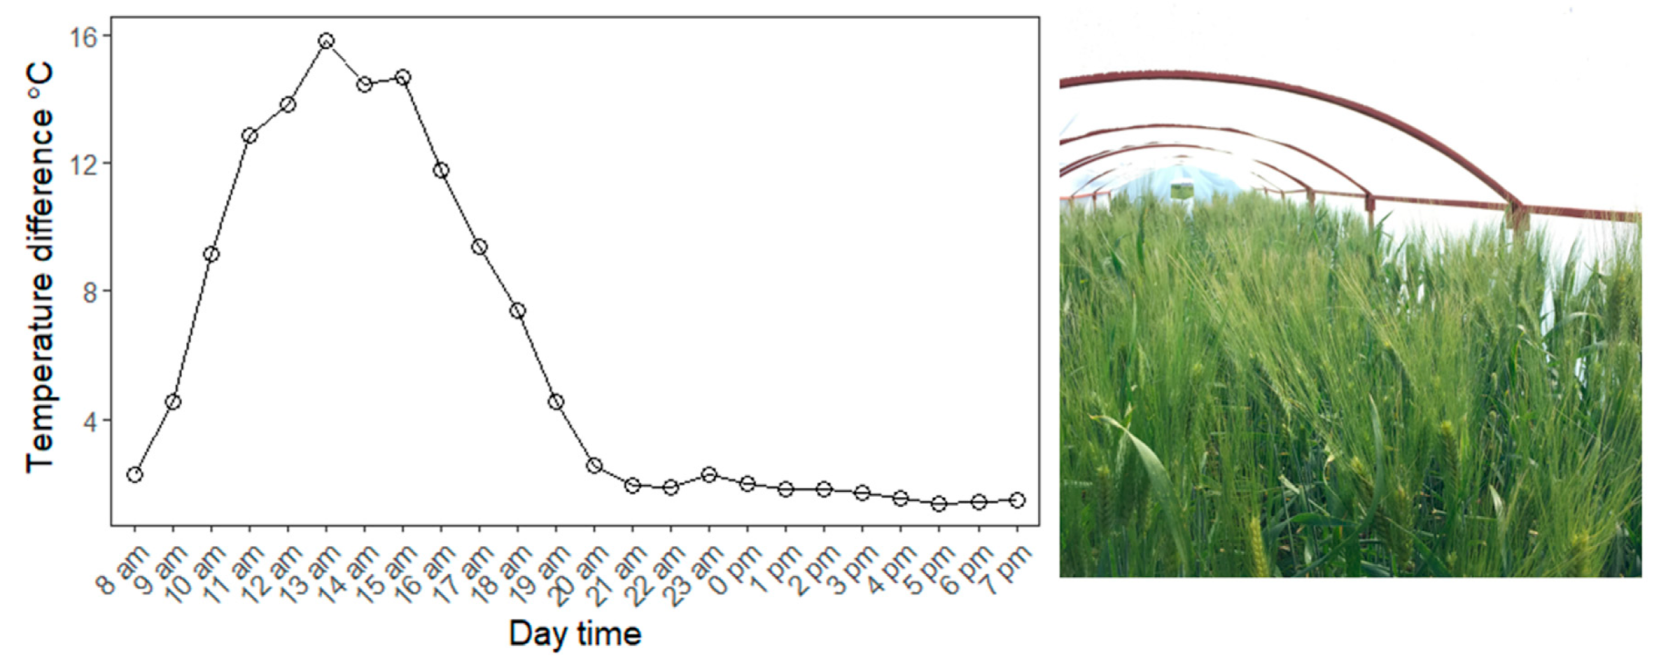 Agronomy | Free Full-Text | Loci Controlling Adaptation to Heat